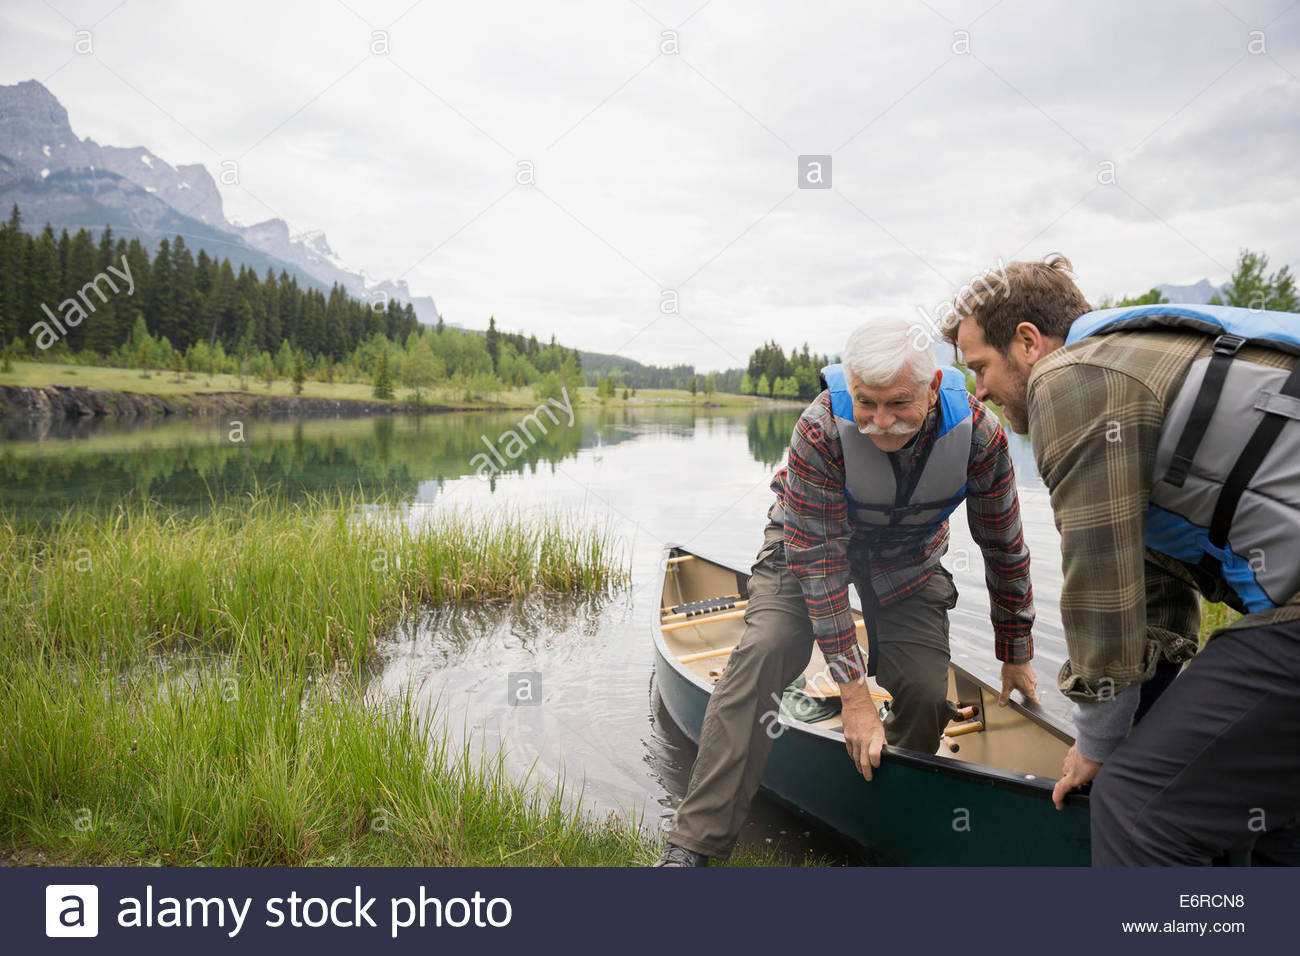 Son helping father out of canoe - Stock Image